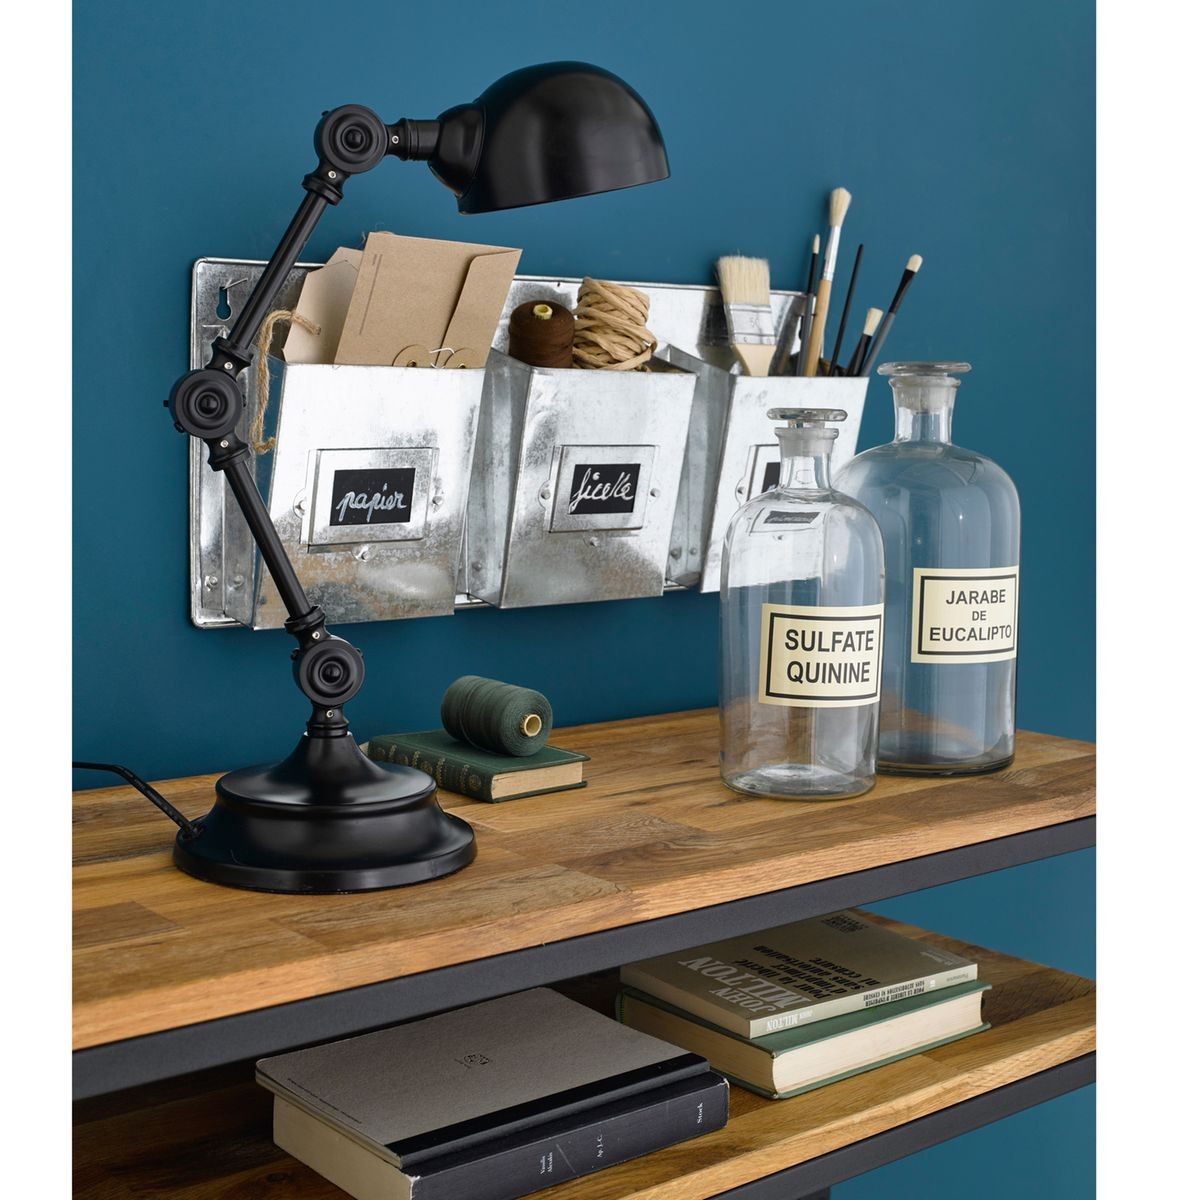 lampe bureau design 4 une hirondelle dans les tiroirs. Black Bedroom Furniture Sets. Home Design Ideas